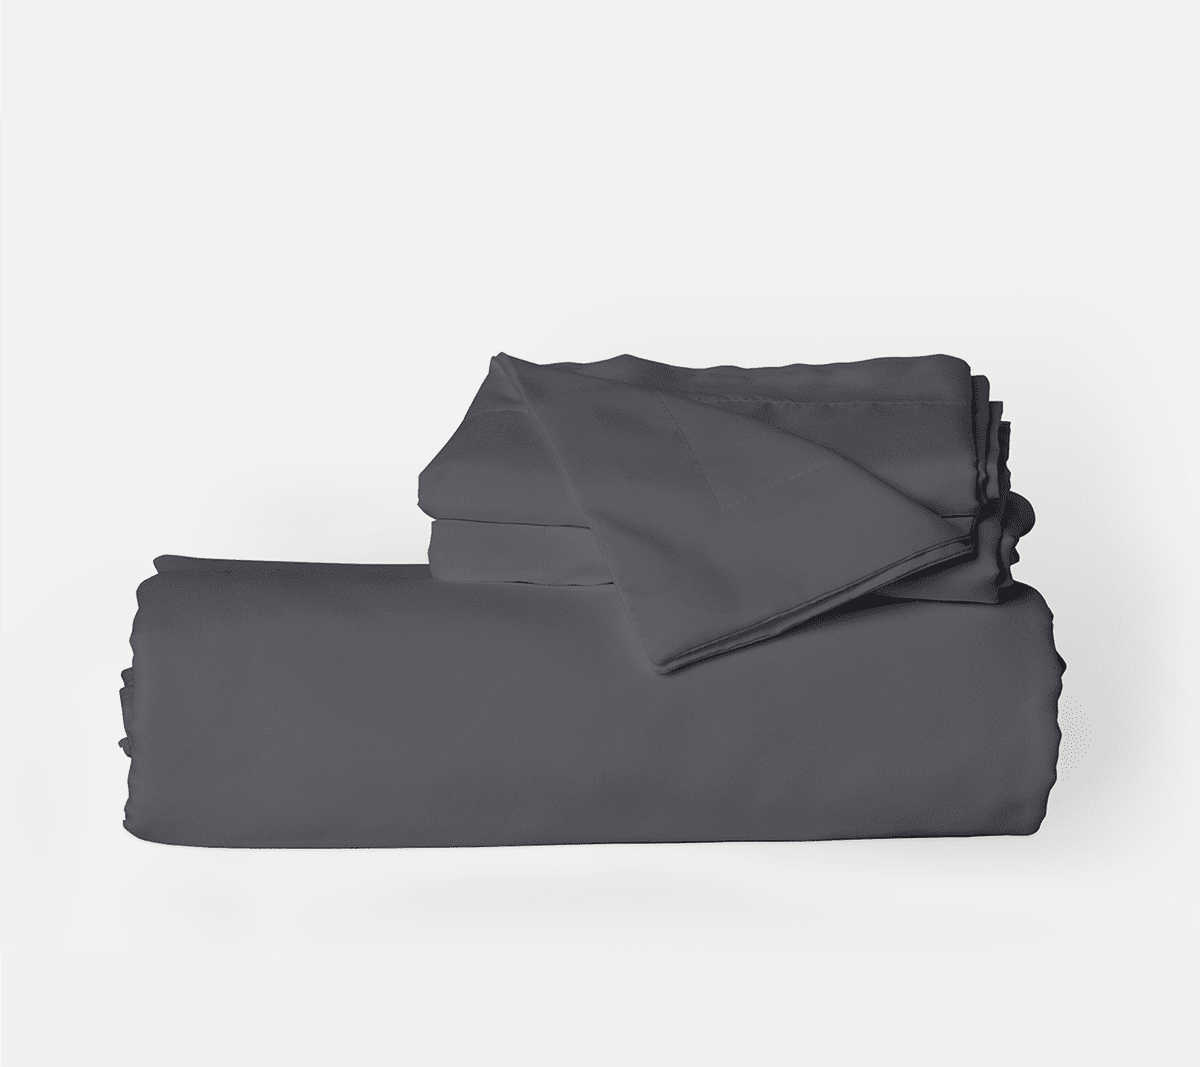 Graphite Gray Duvet Cover Set